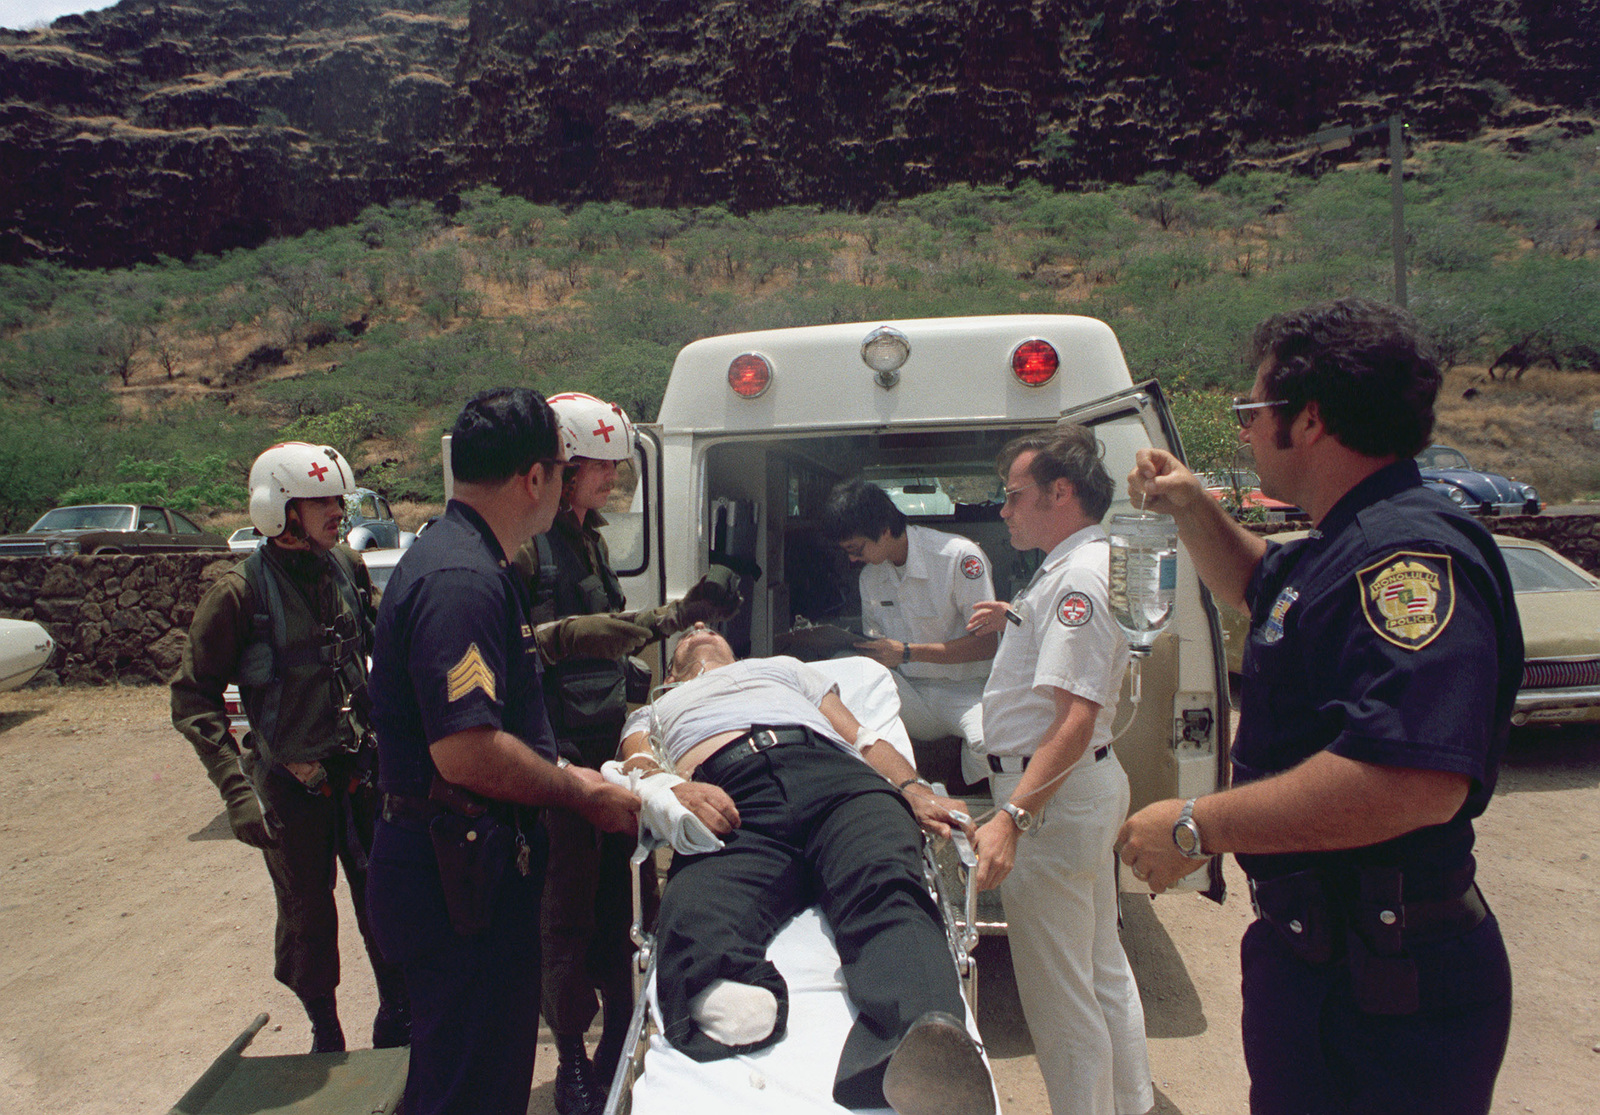 US Army medics from the 68th Medical Detachment, 25th Infantry Division, help Honolulu police officers move a heart attack victim for transfer to a medical evacuation helicopter